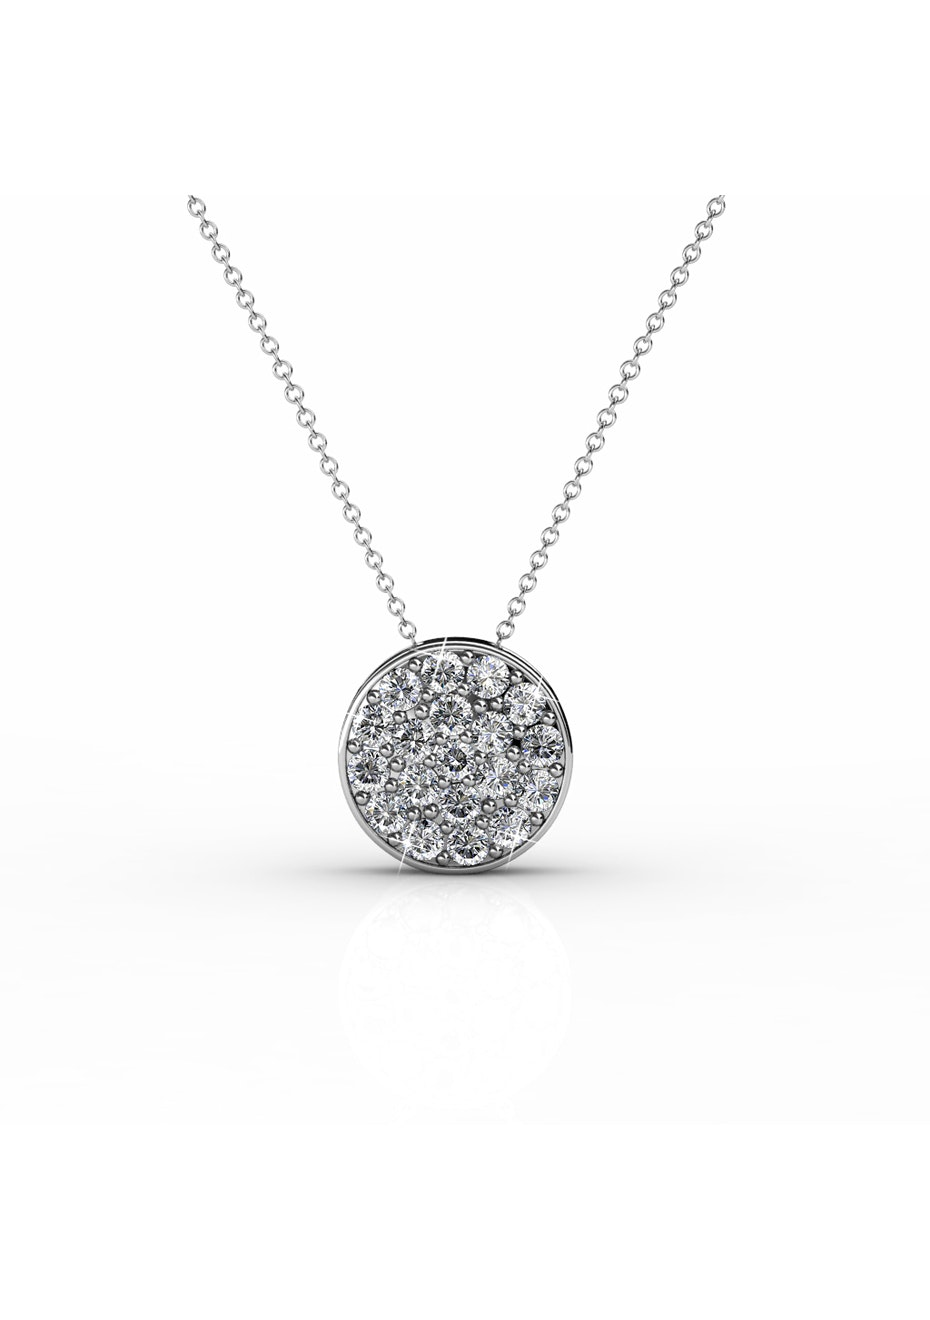 Pave Pendant necklace Embellished with Crystals from Swarovski